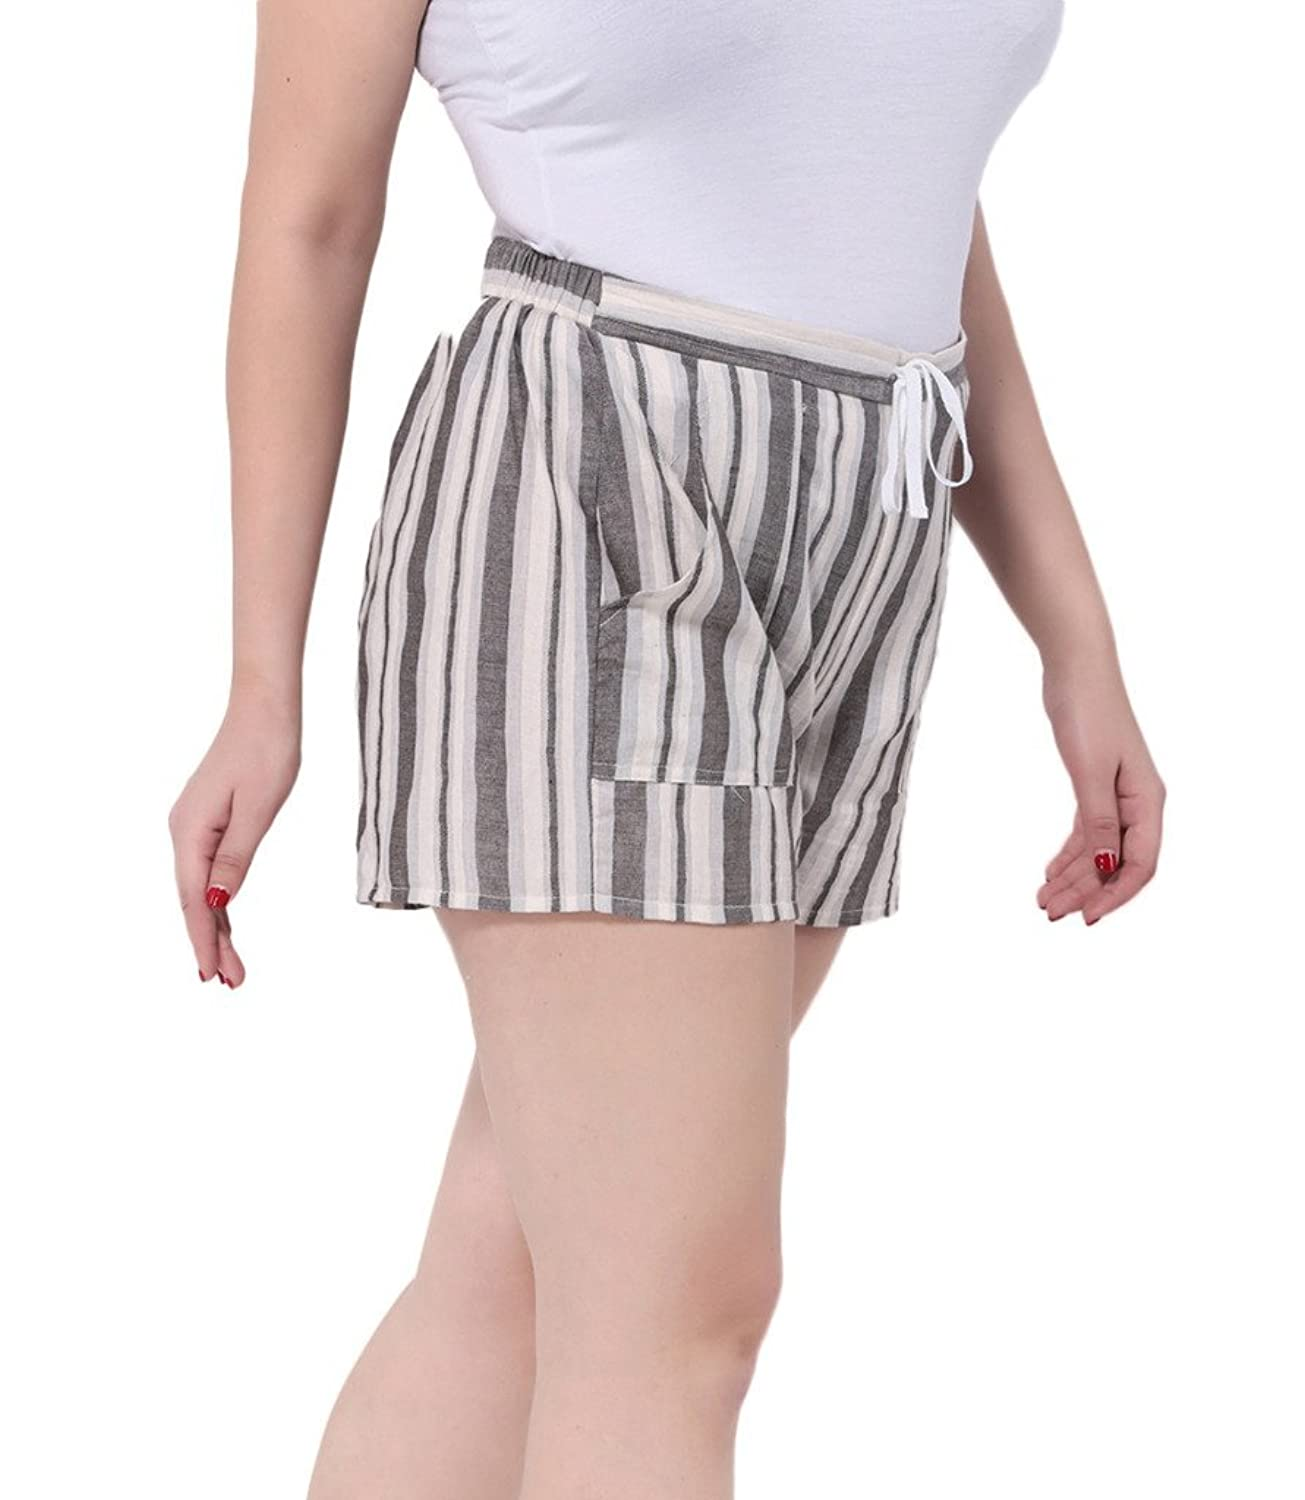 Toyobuy Women Plus Size Retro Stripe Elastic Beach Summer Shorts Sky Blue